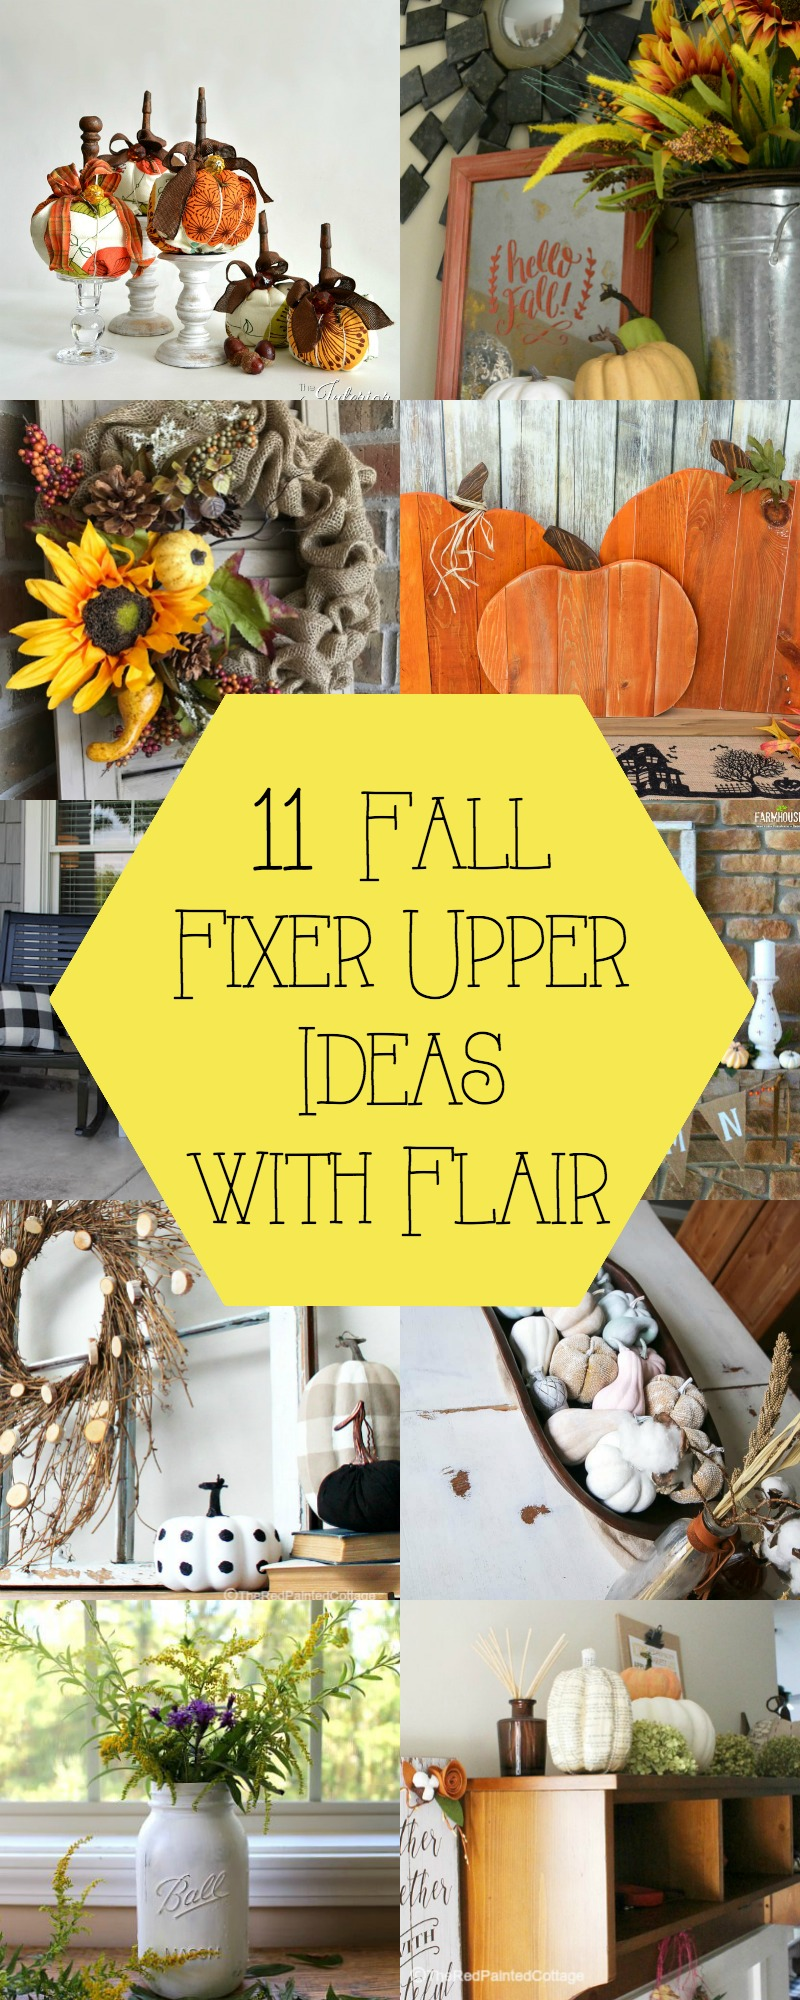 11 Fall Fixer Upper Ideas with Flair